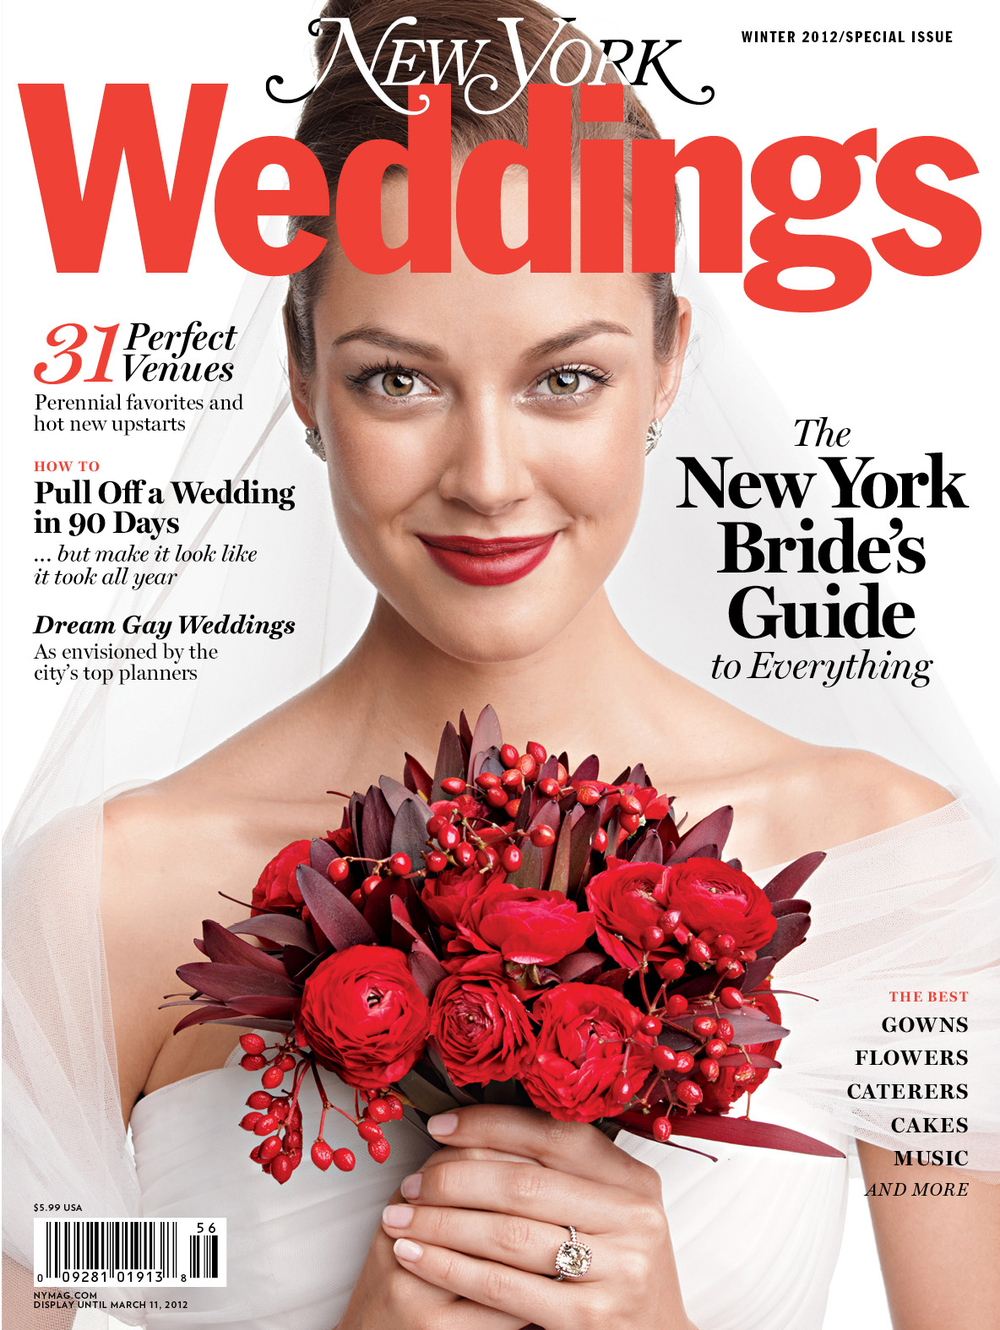 newyorkmagazineweddings-cover.jpg